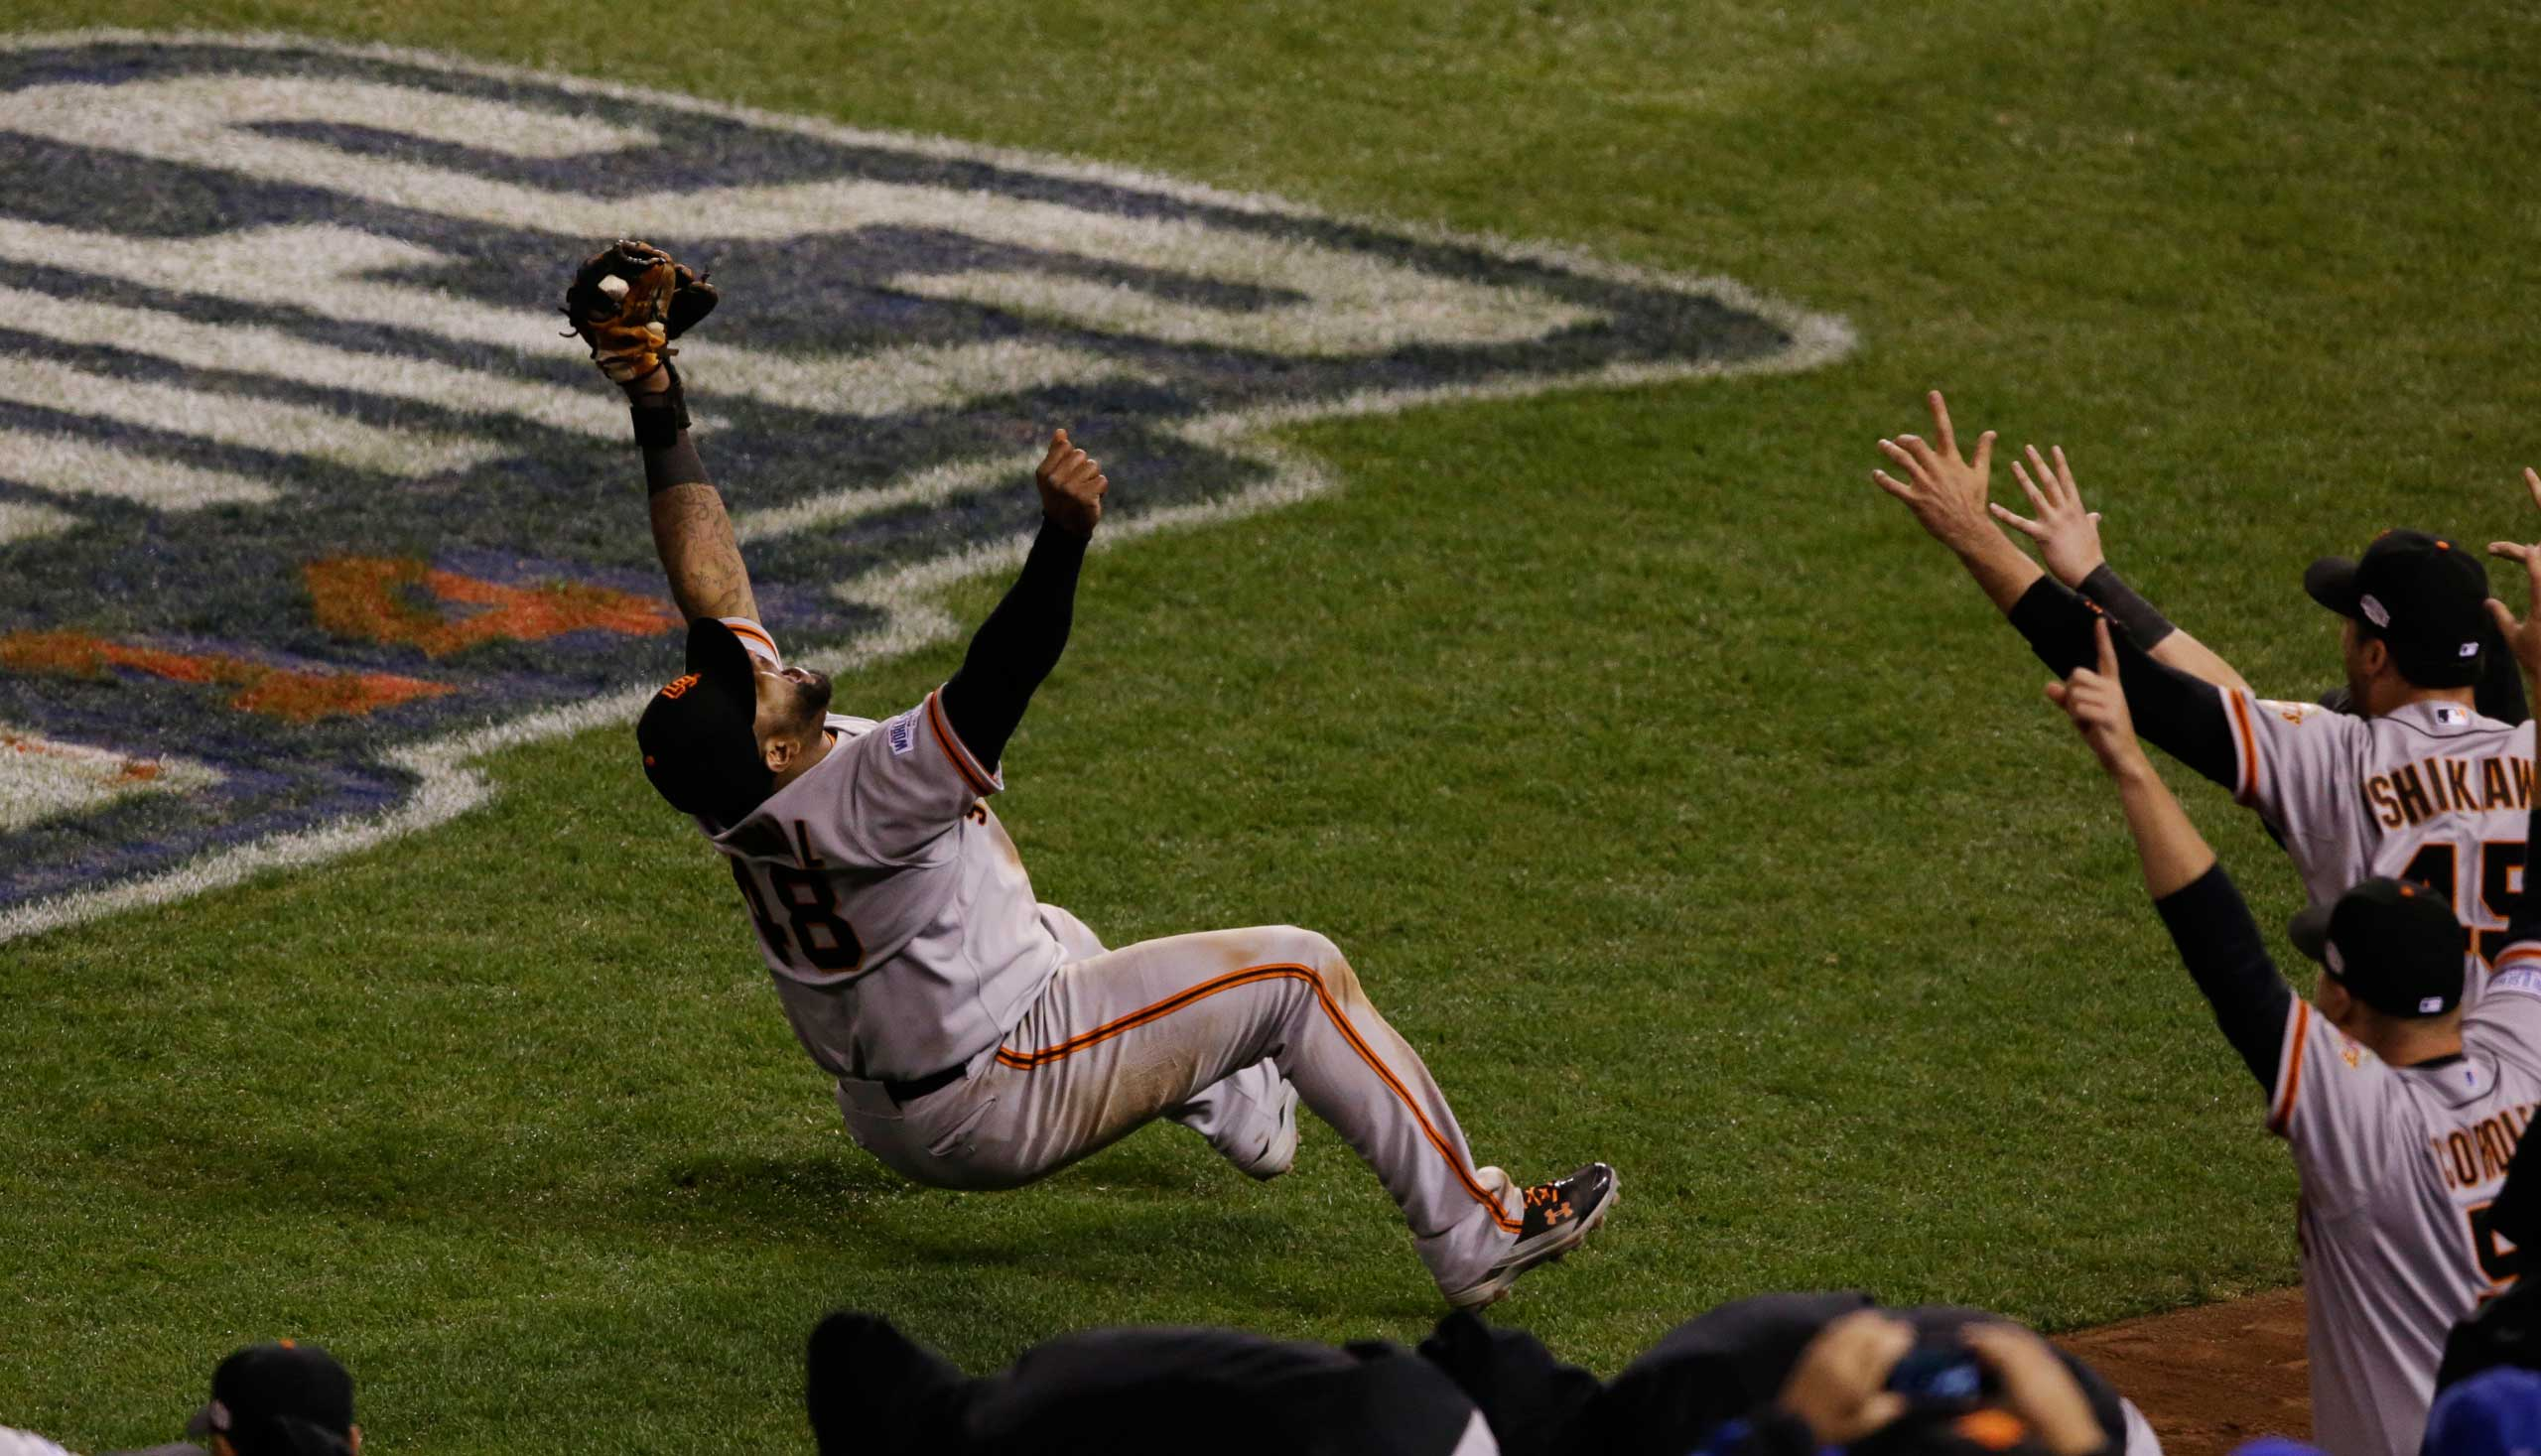 Oct. 29, 2014. San Francisco Giants Pablo Sandoval catches the last out a pop fly by Kansas City Royals Salvador Perez during the ninth inning of Game 7 of baseball's World Series Wednesday, in Kansas City, Mo. The Giants won 3-2 to win the series.